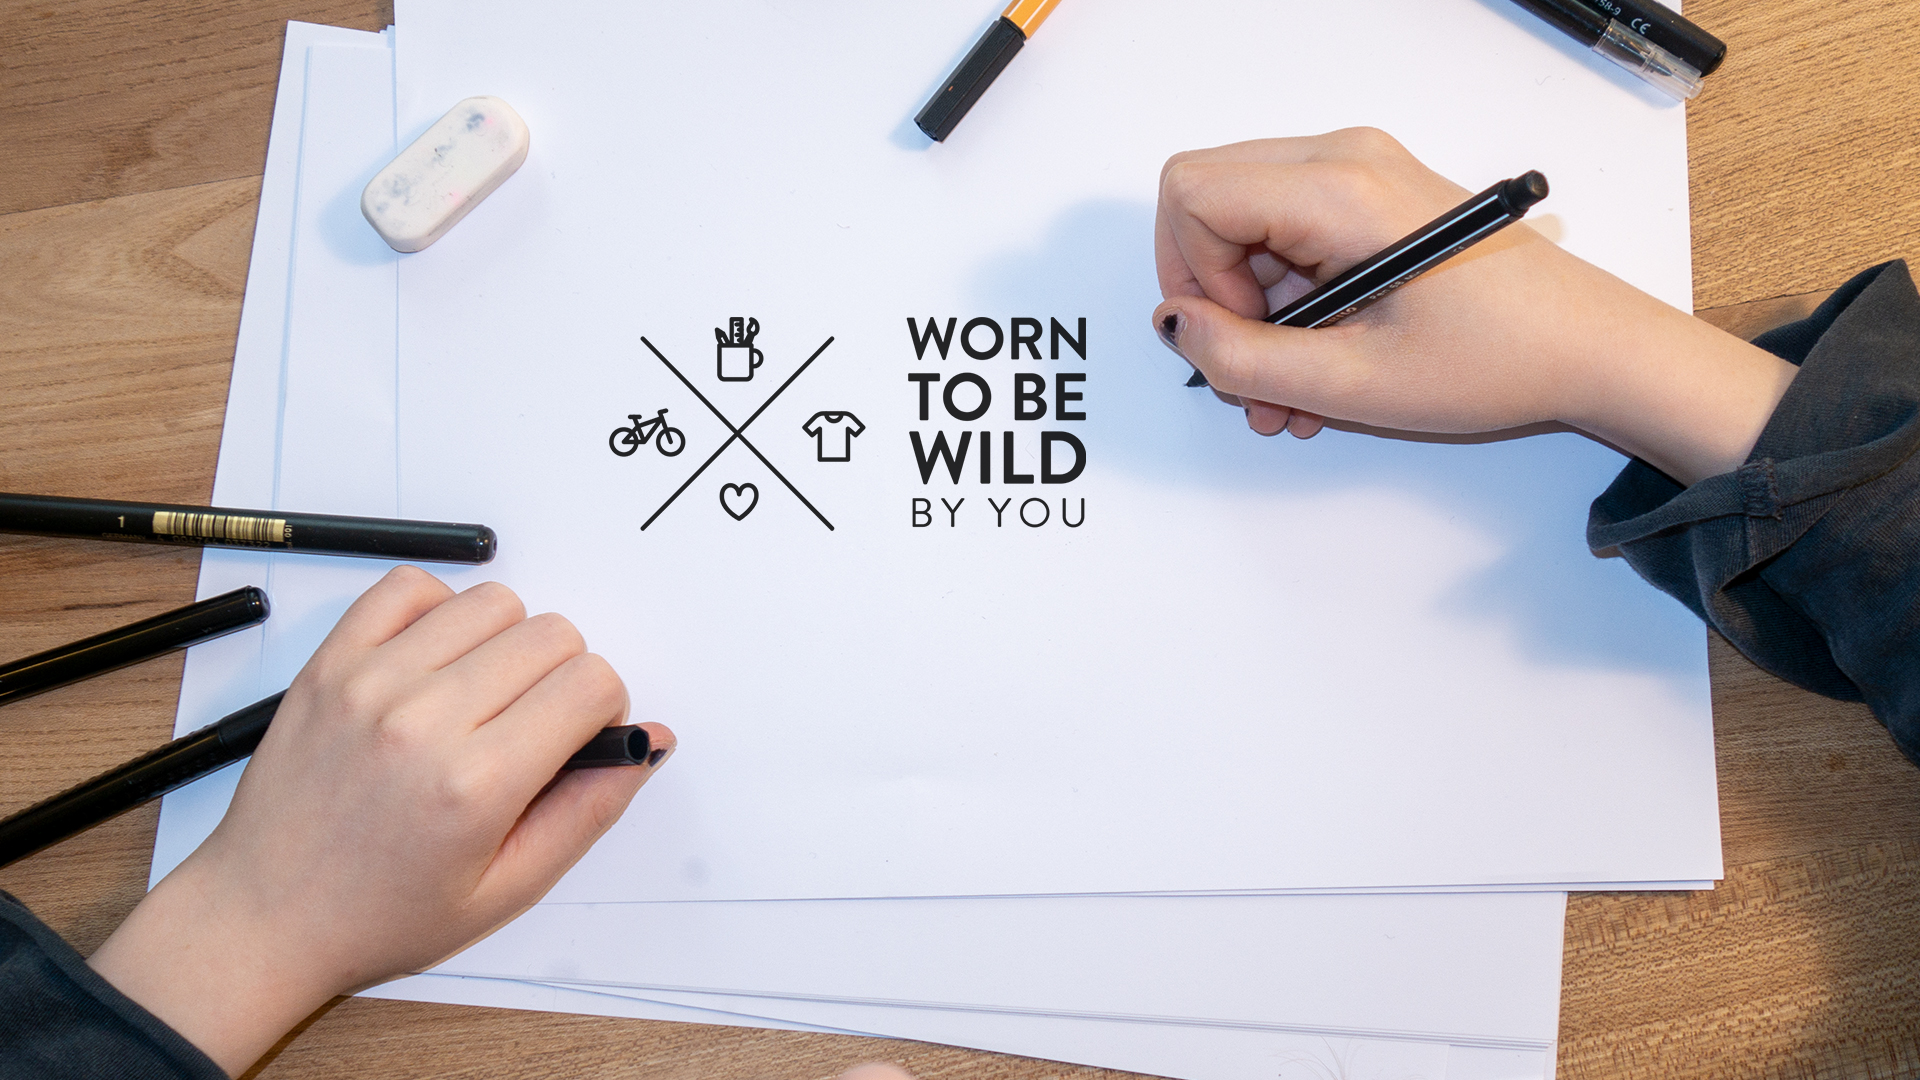 WORN TO BE WILD by woom Logo